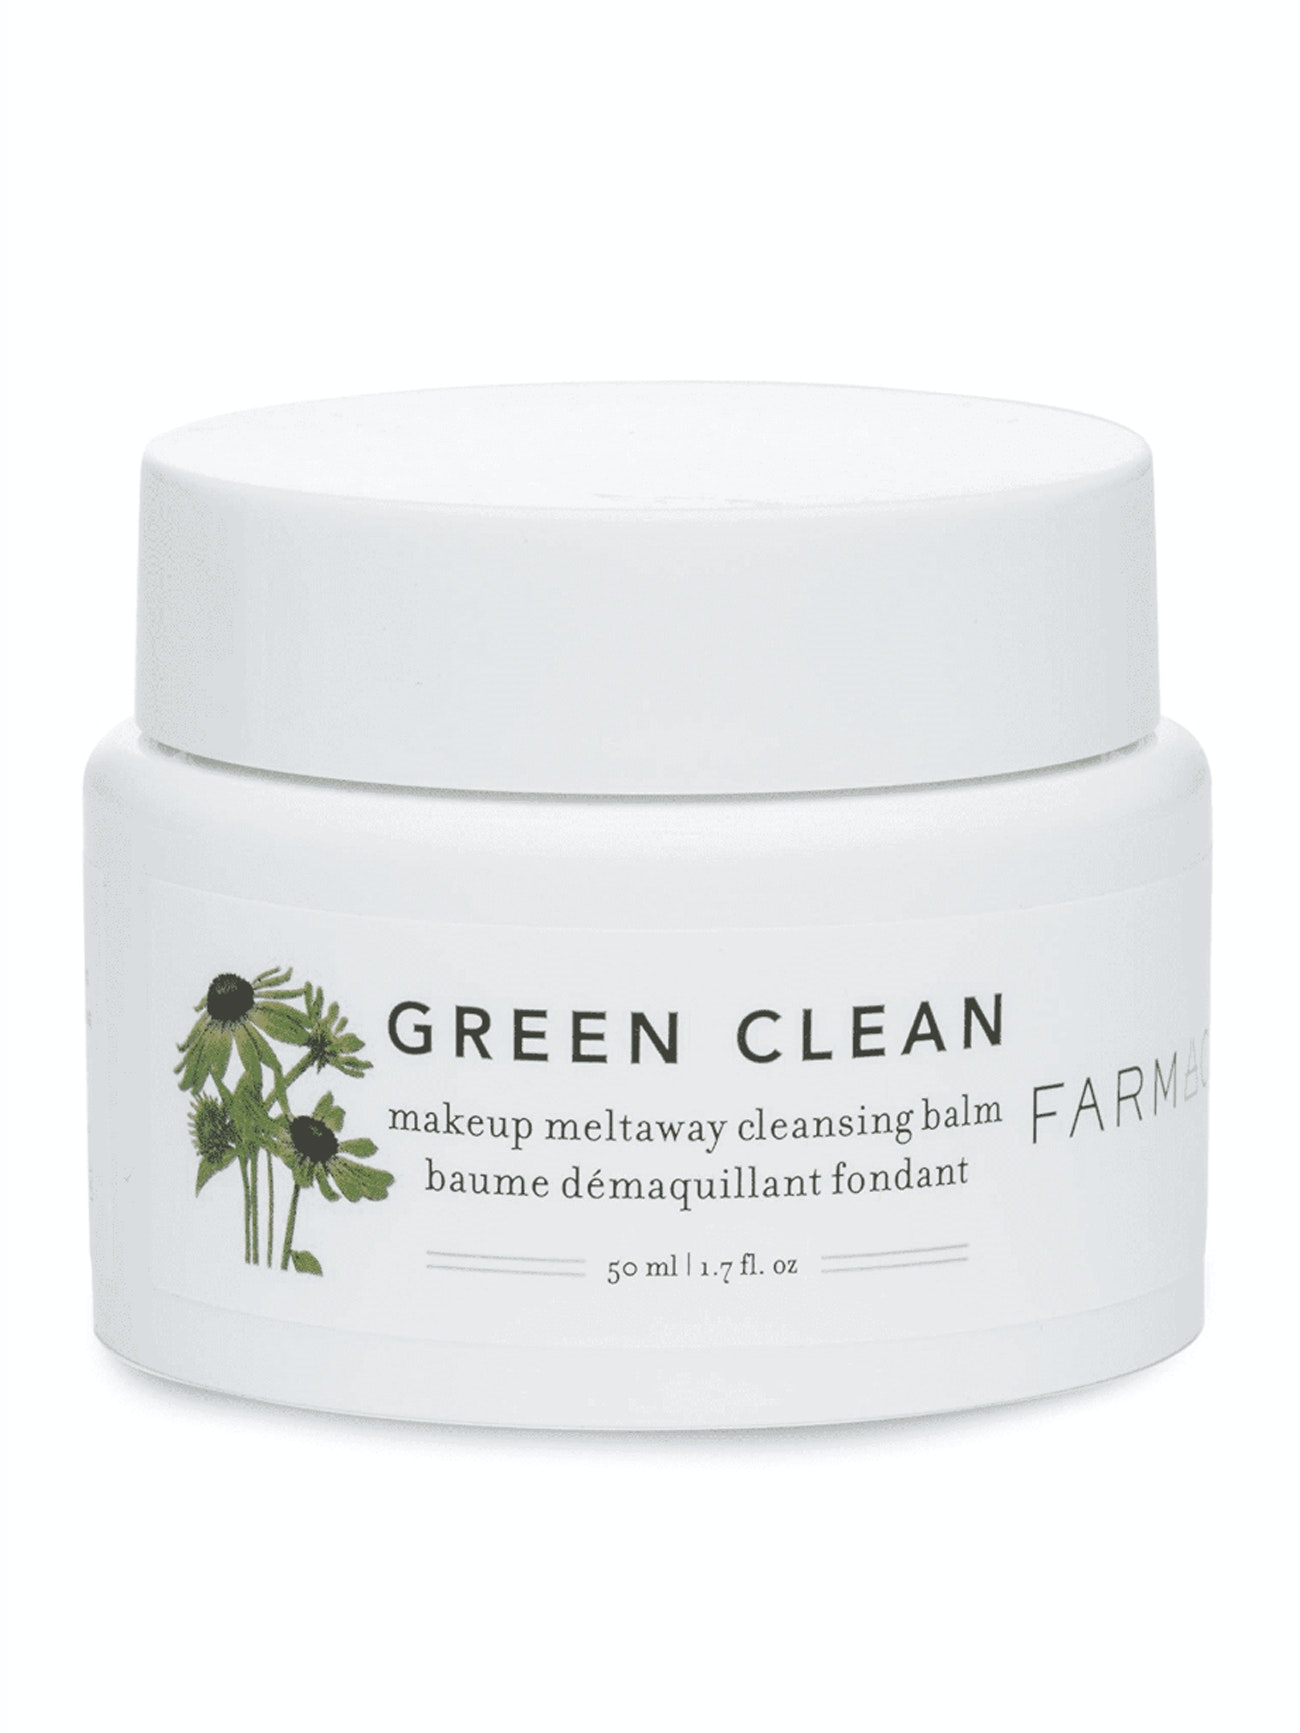 Farmacy Green Clean Makeup Meltaway Cleansing Balm Mini